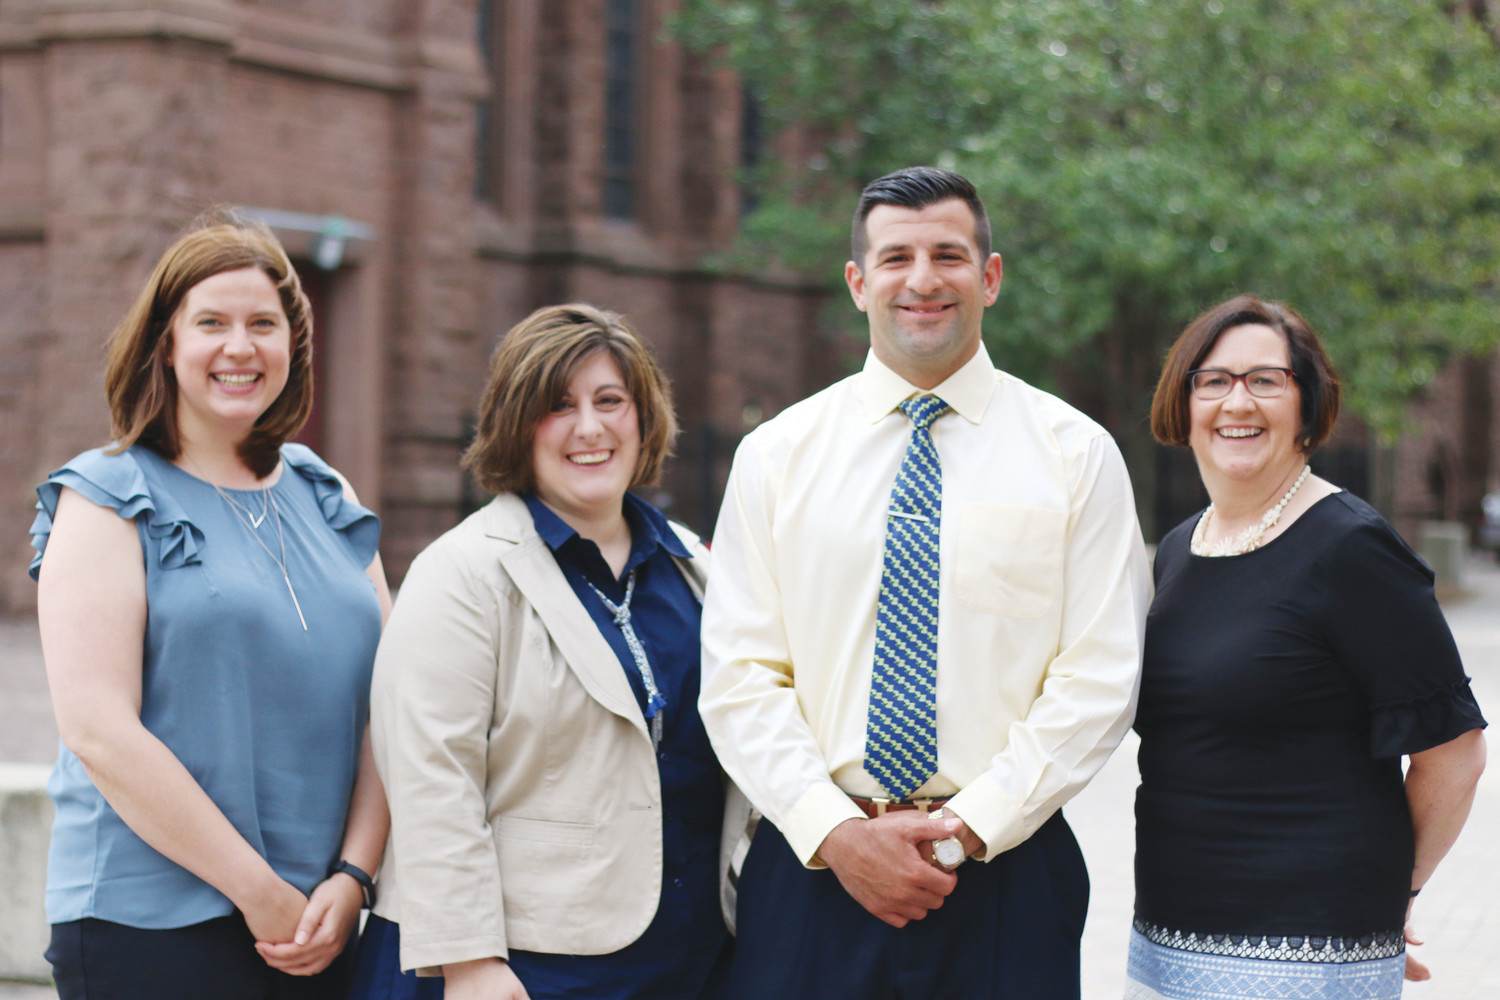 From left, earlier this summer, Jessica Walters, Erin Clark, Mark DeCiccio and Mary-Regina Bennett visit the Catholic School Office for a welcome meeting. Not pictured Maurice (Mo) Guernon and Susan Morrissey. The Diocese of Providence welcomed six new Catholic School principals to begin serving for the 2018-2019 school year.